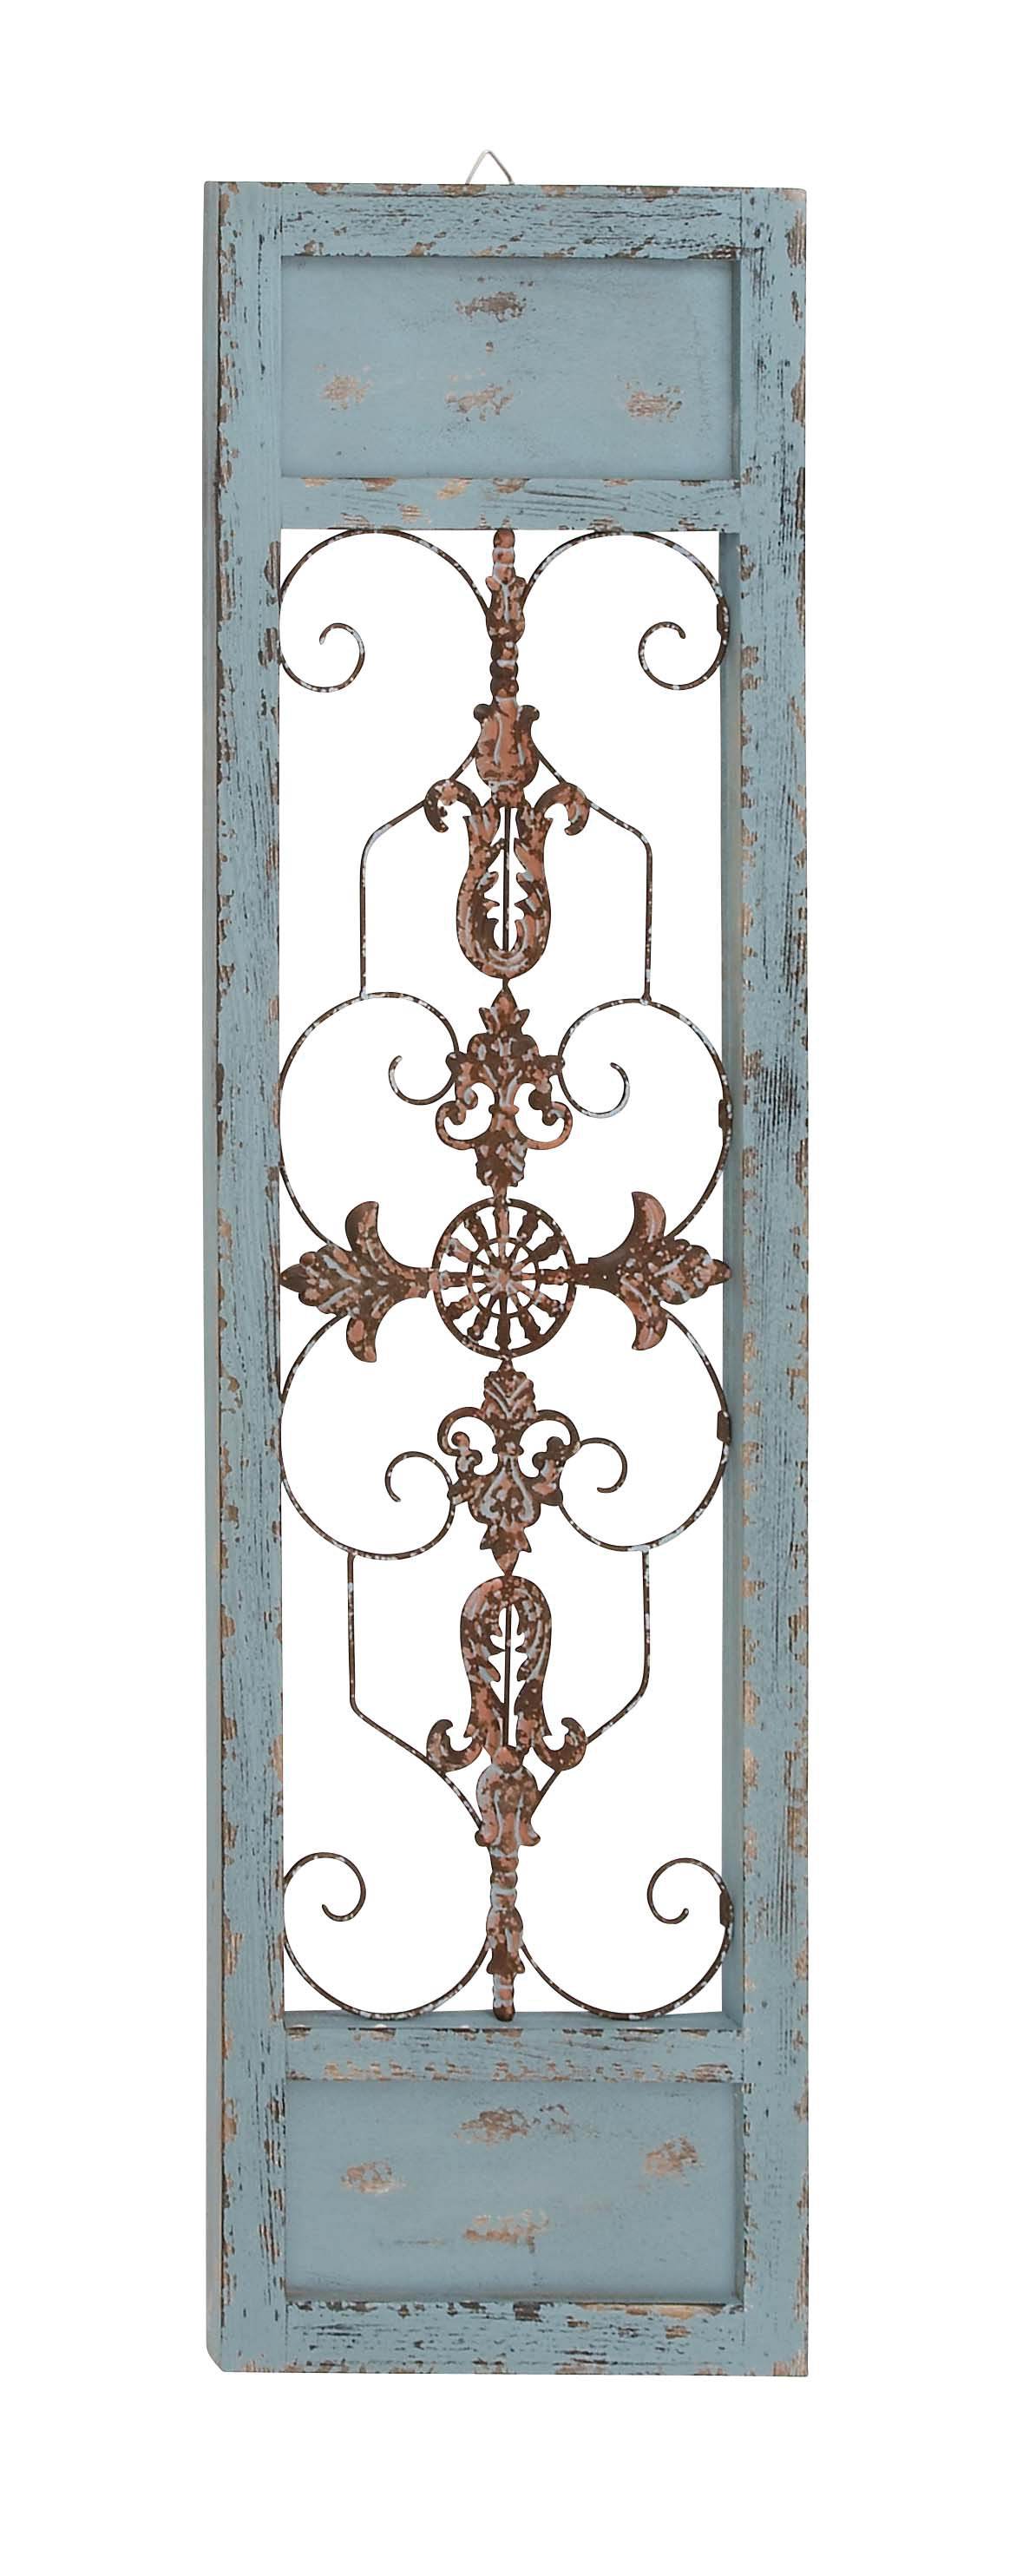 Farmhouse & Rustic Lark Manor Wall Decor | Birch Lane inside 1 Piece Ortie Panel Wall Decor (Image 14 of 30)